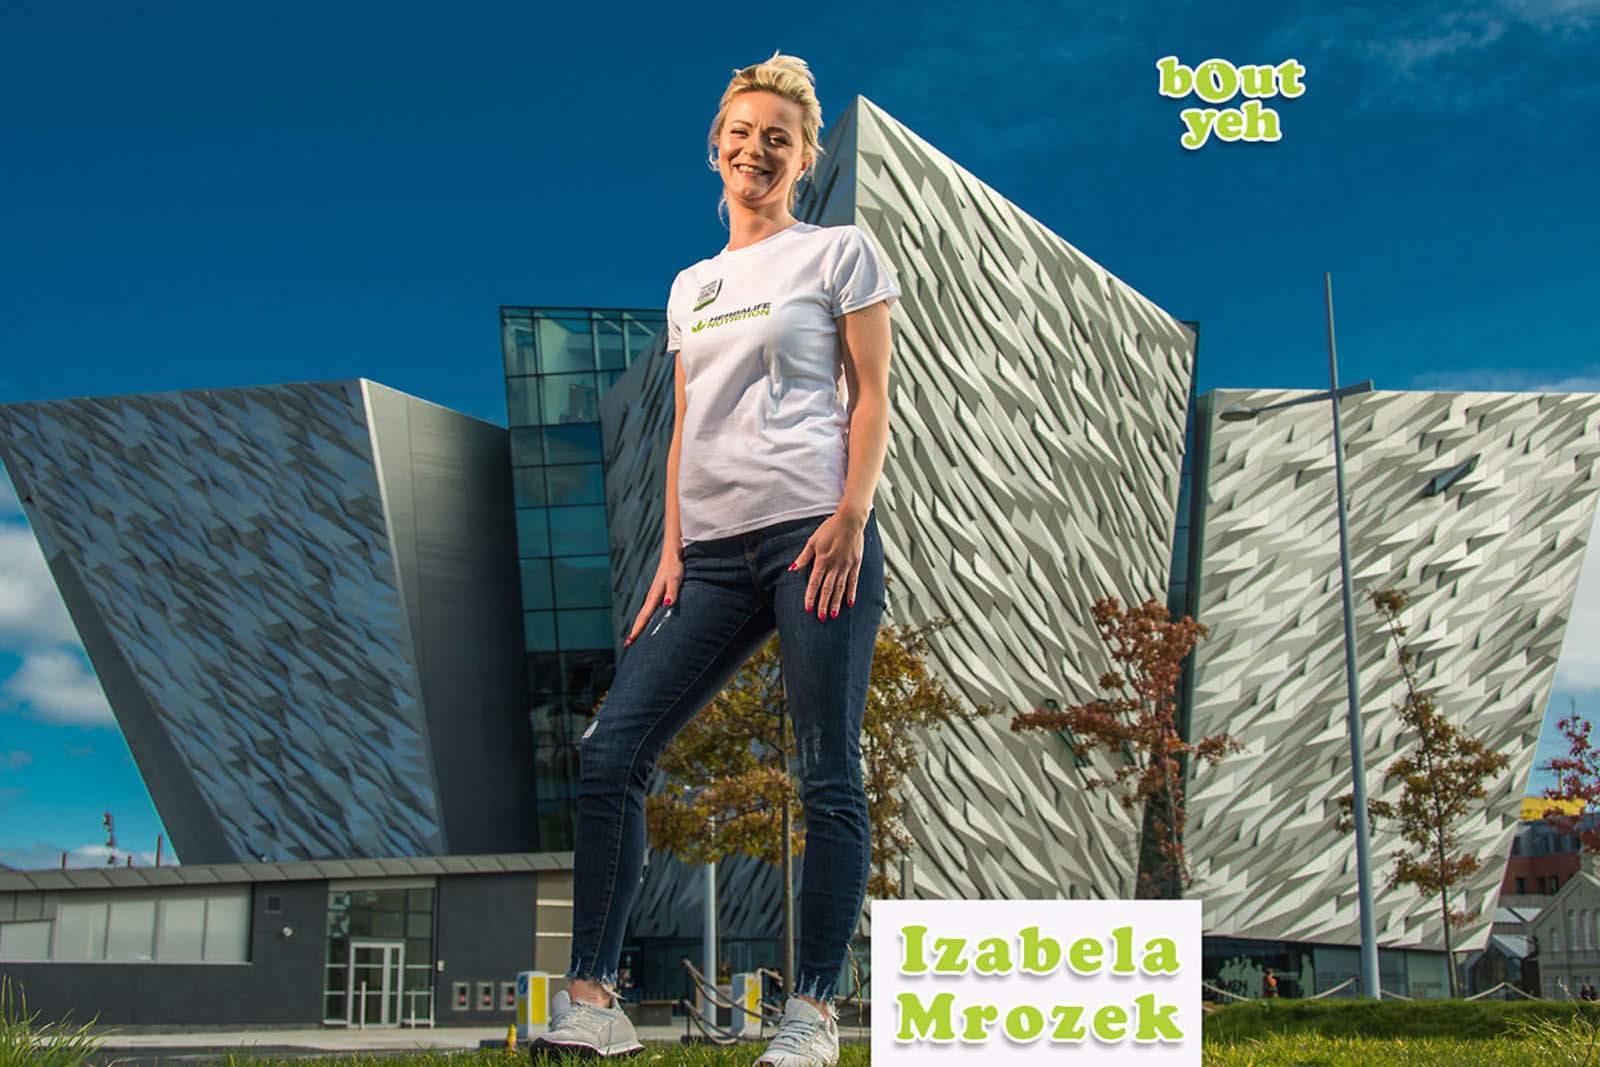 Social Media Marketing Consultants Belfast - Herbalife campaign photo 5923. Photo by Bout Yeh used in a Social Media Marketing campaign across Bout Yeh's Social Media platforms for Herbalife agent in Northern Ireland.